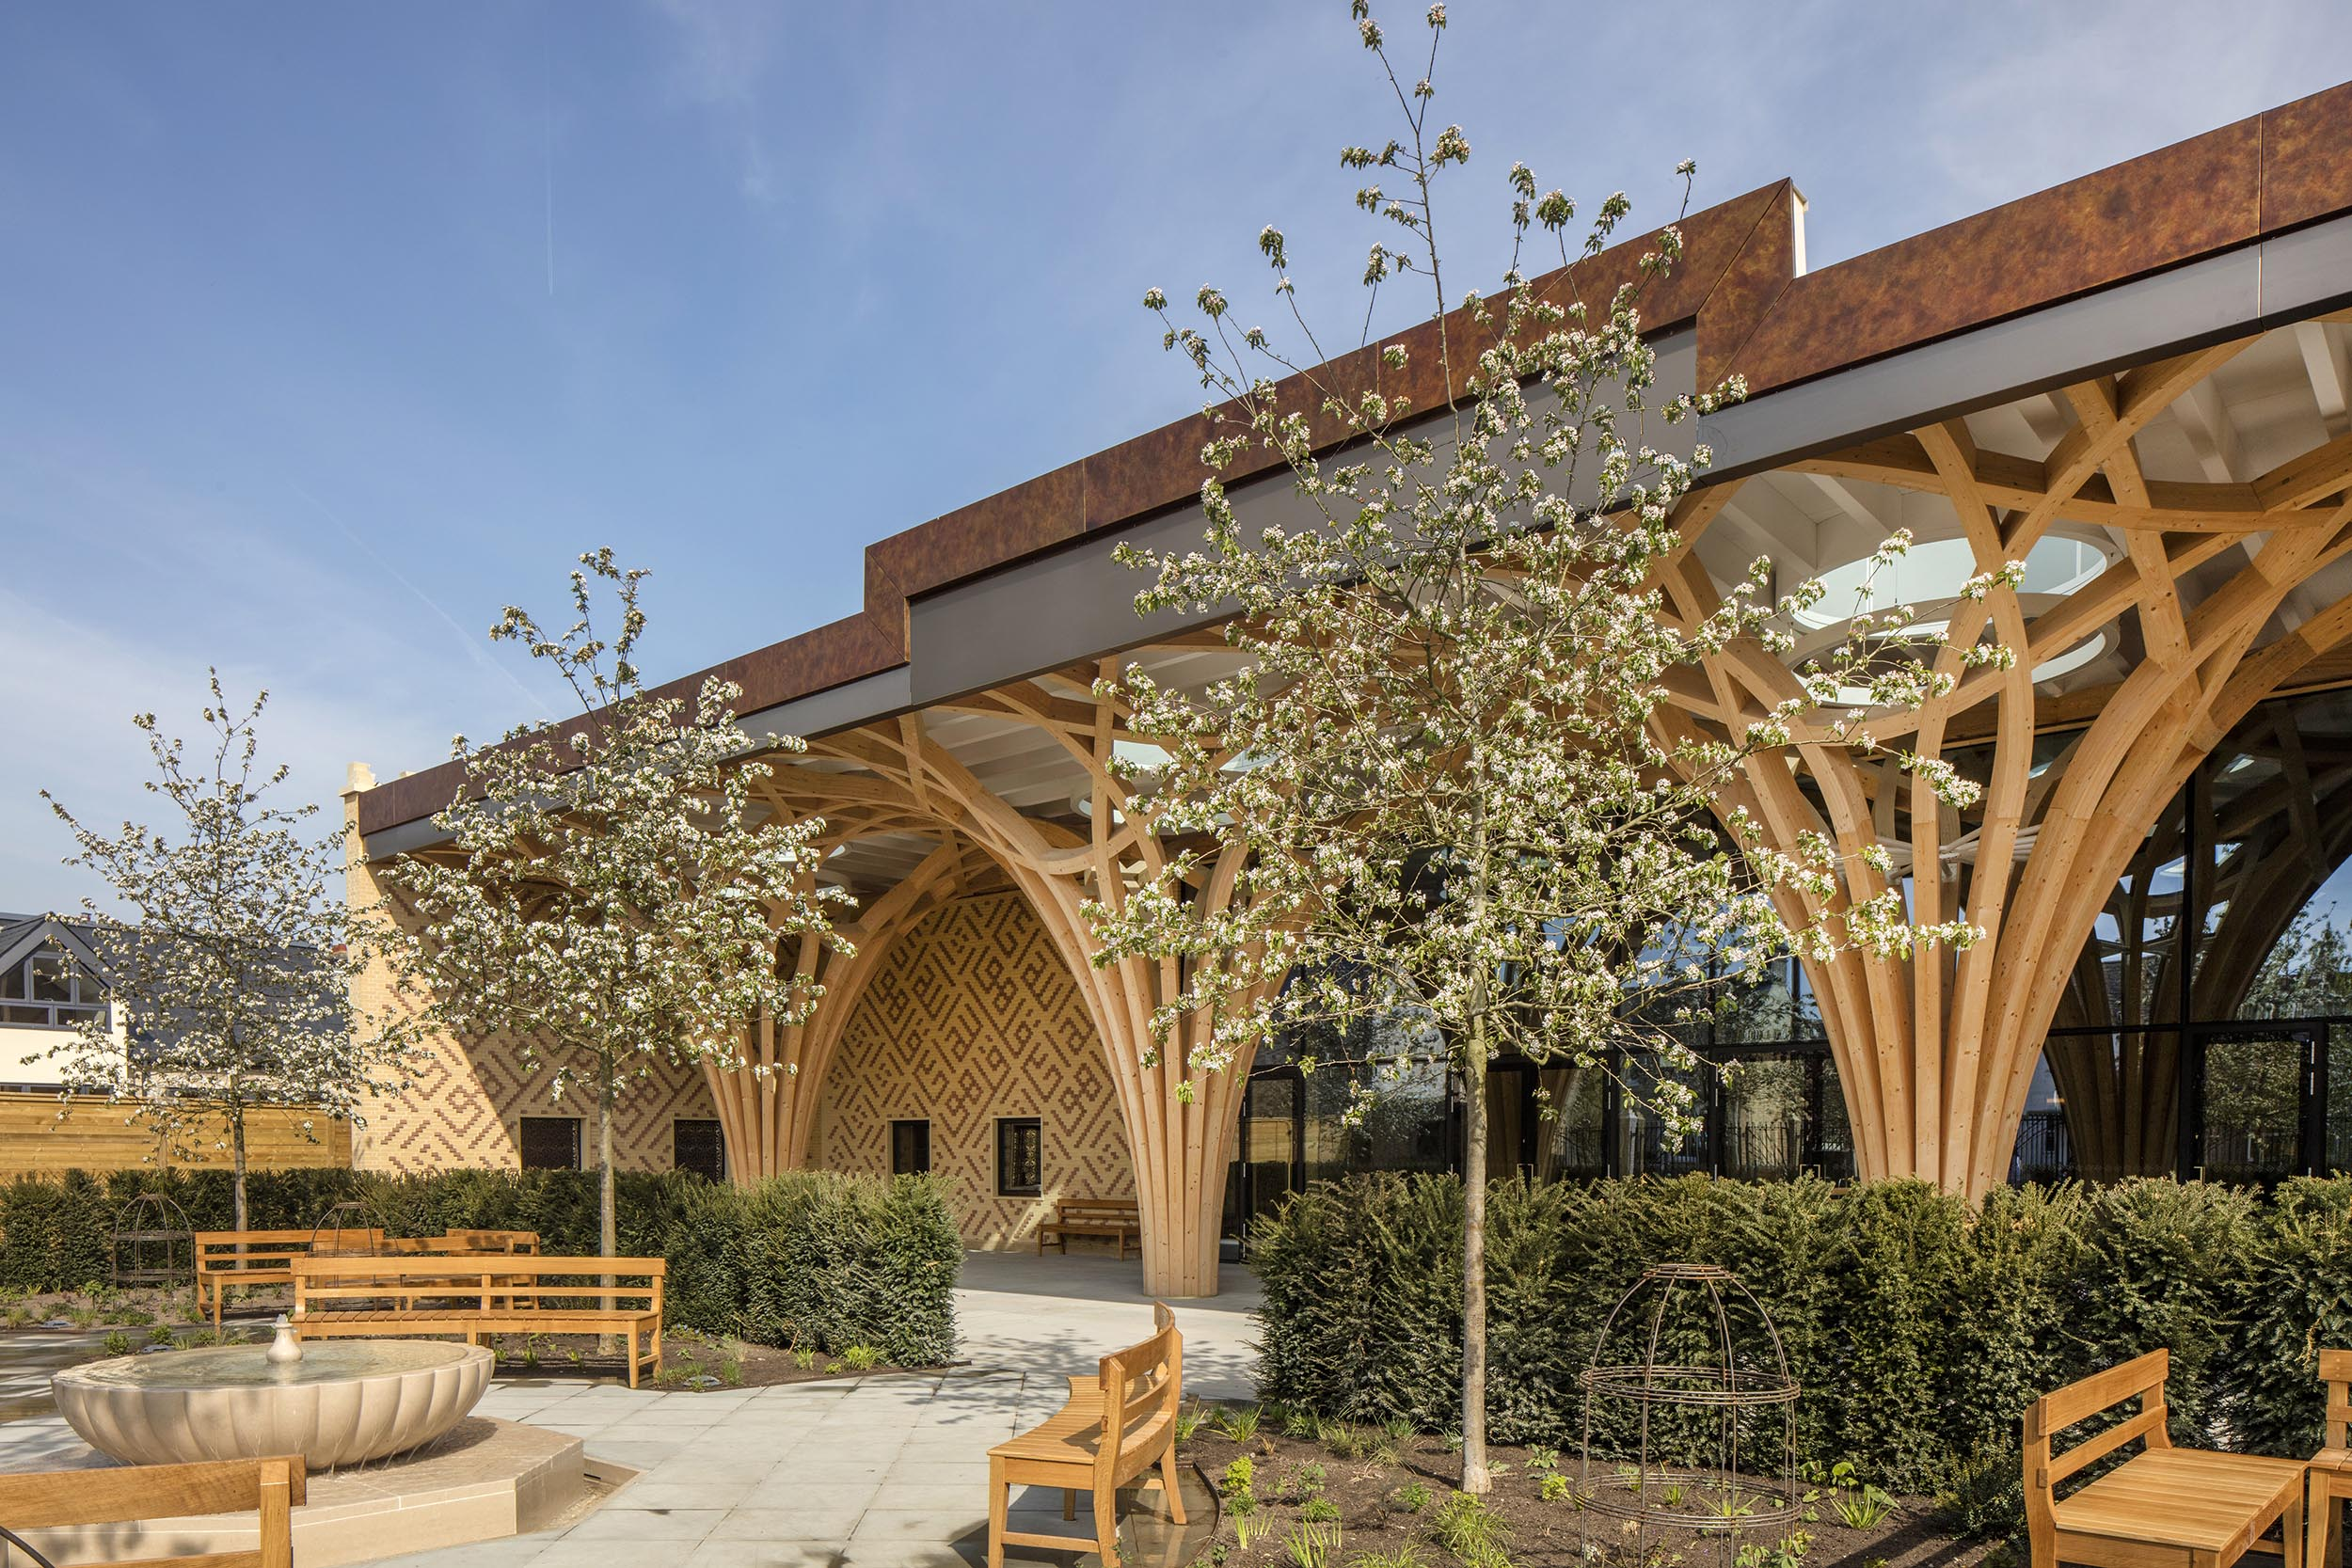 Cambridge Mosque - Islamic garden, fountain & front portico - by Marks Barfield Architects, photo Morley von Sternberg